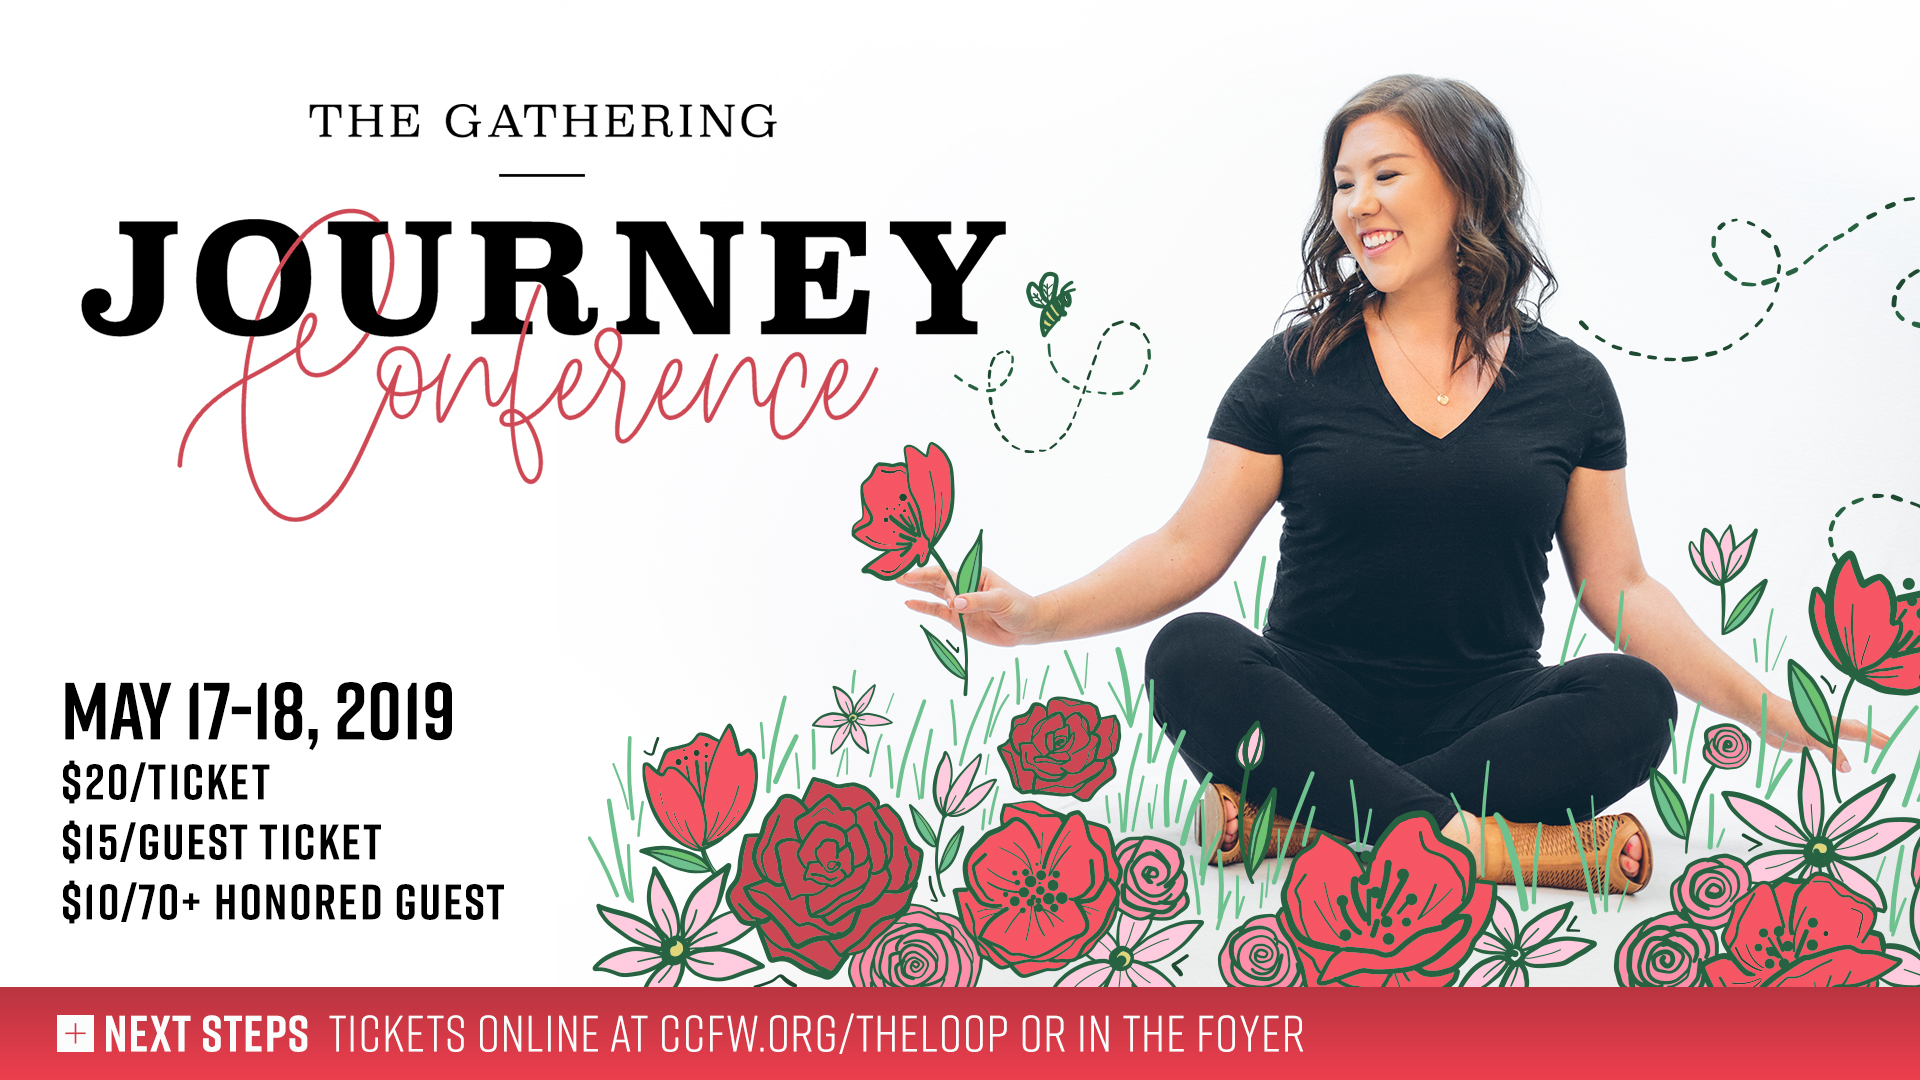 Journey Conference AS 2.jpg